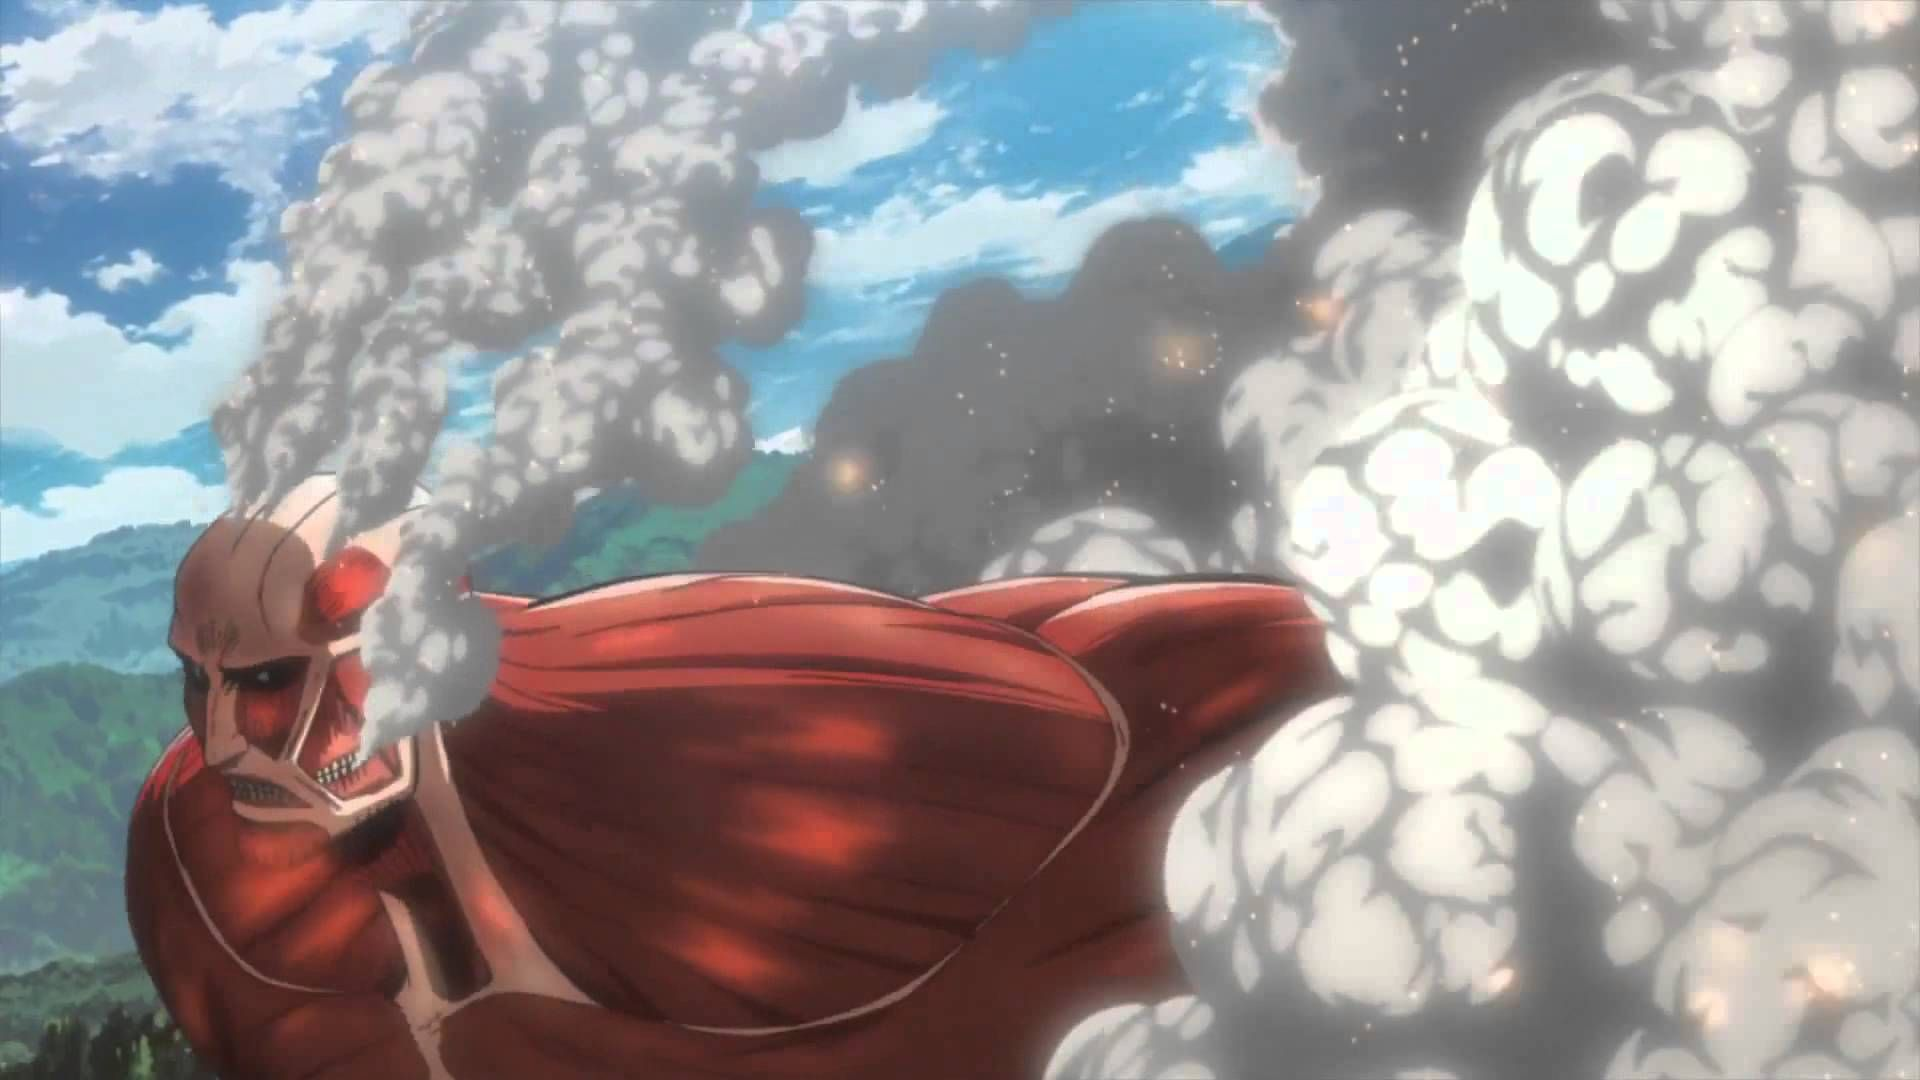 Attack On Titan Trailer Best anime shows, Attack on